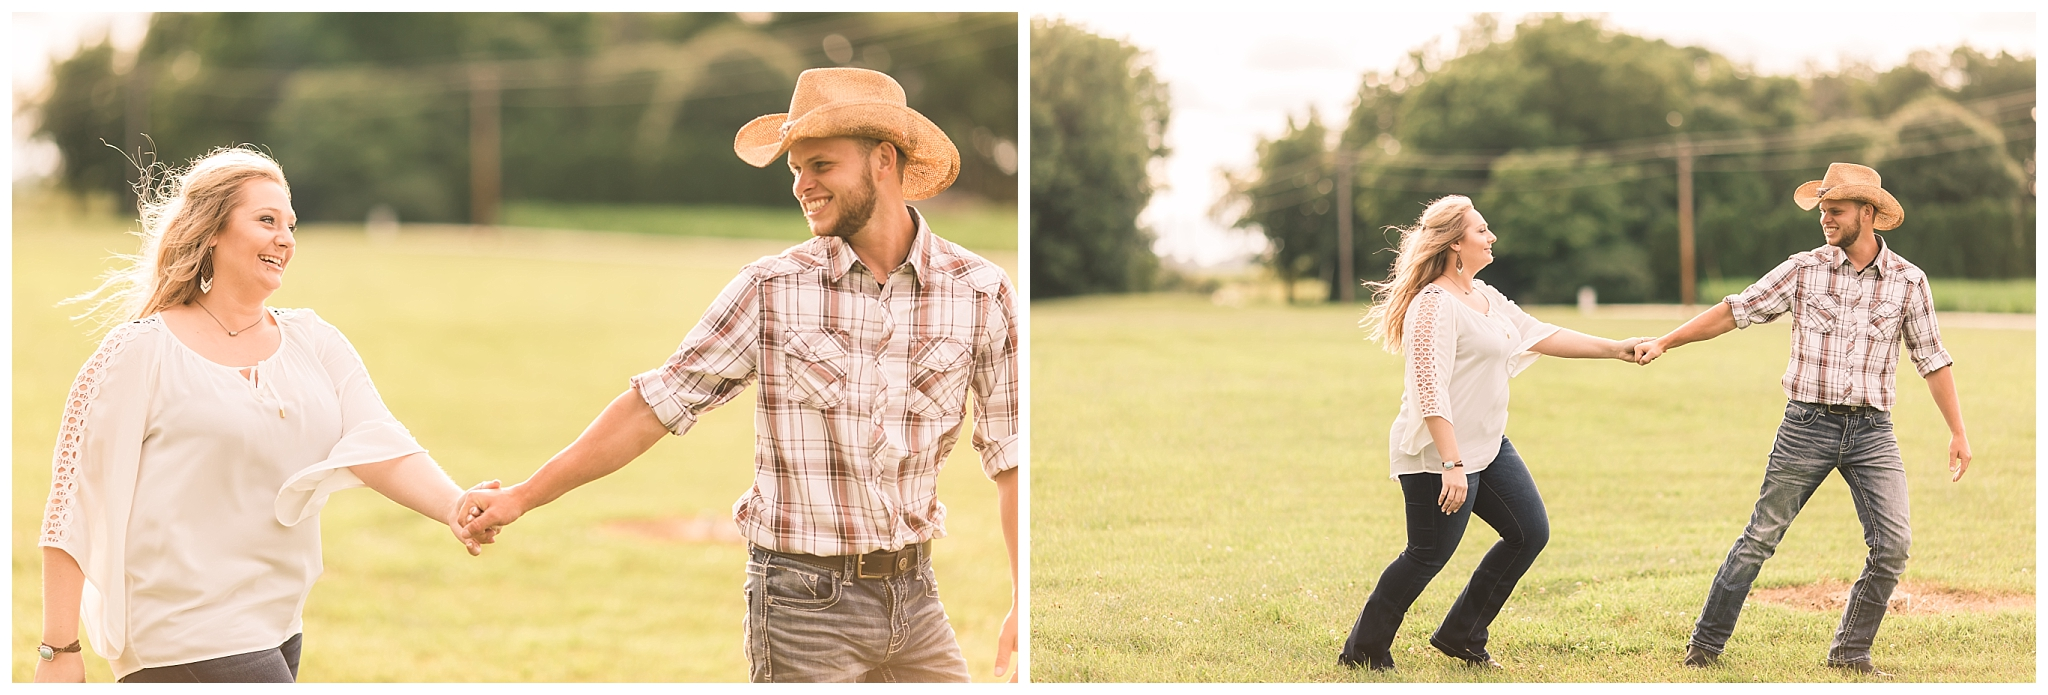 lafayette indiana sunset engagement photography county fair adventure new adventure productions_0672.jpg